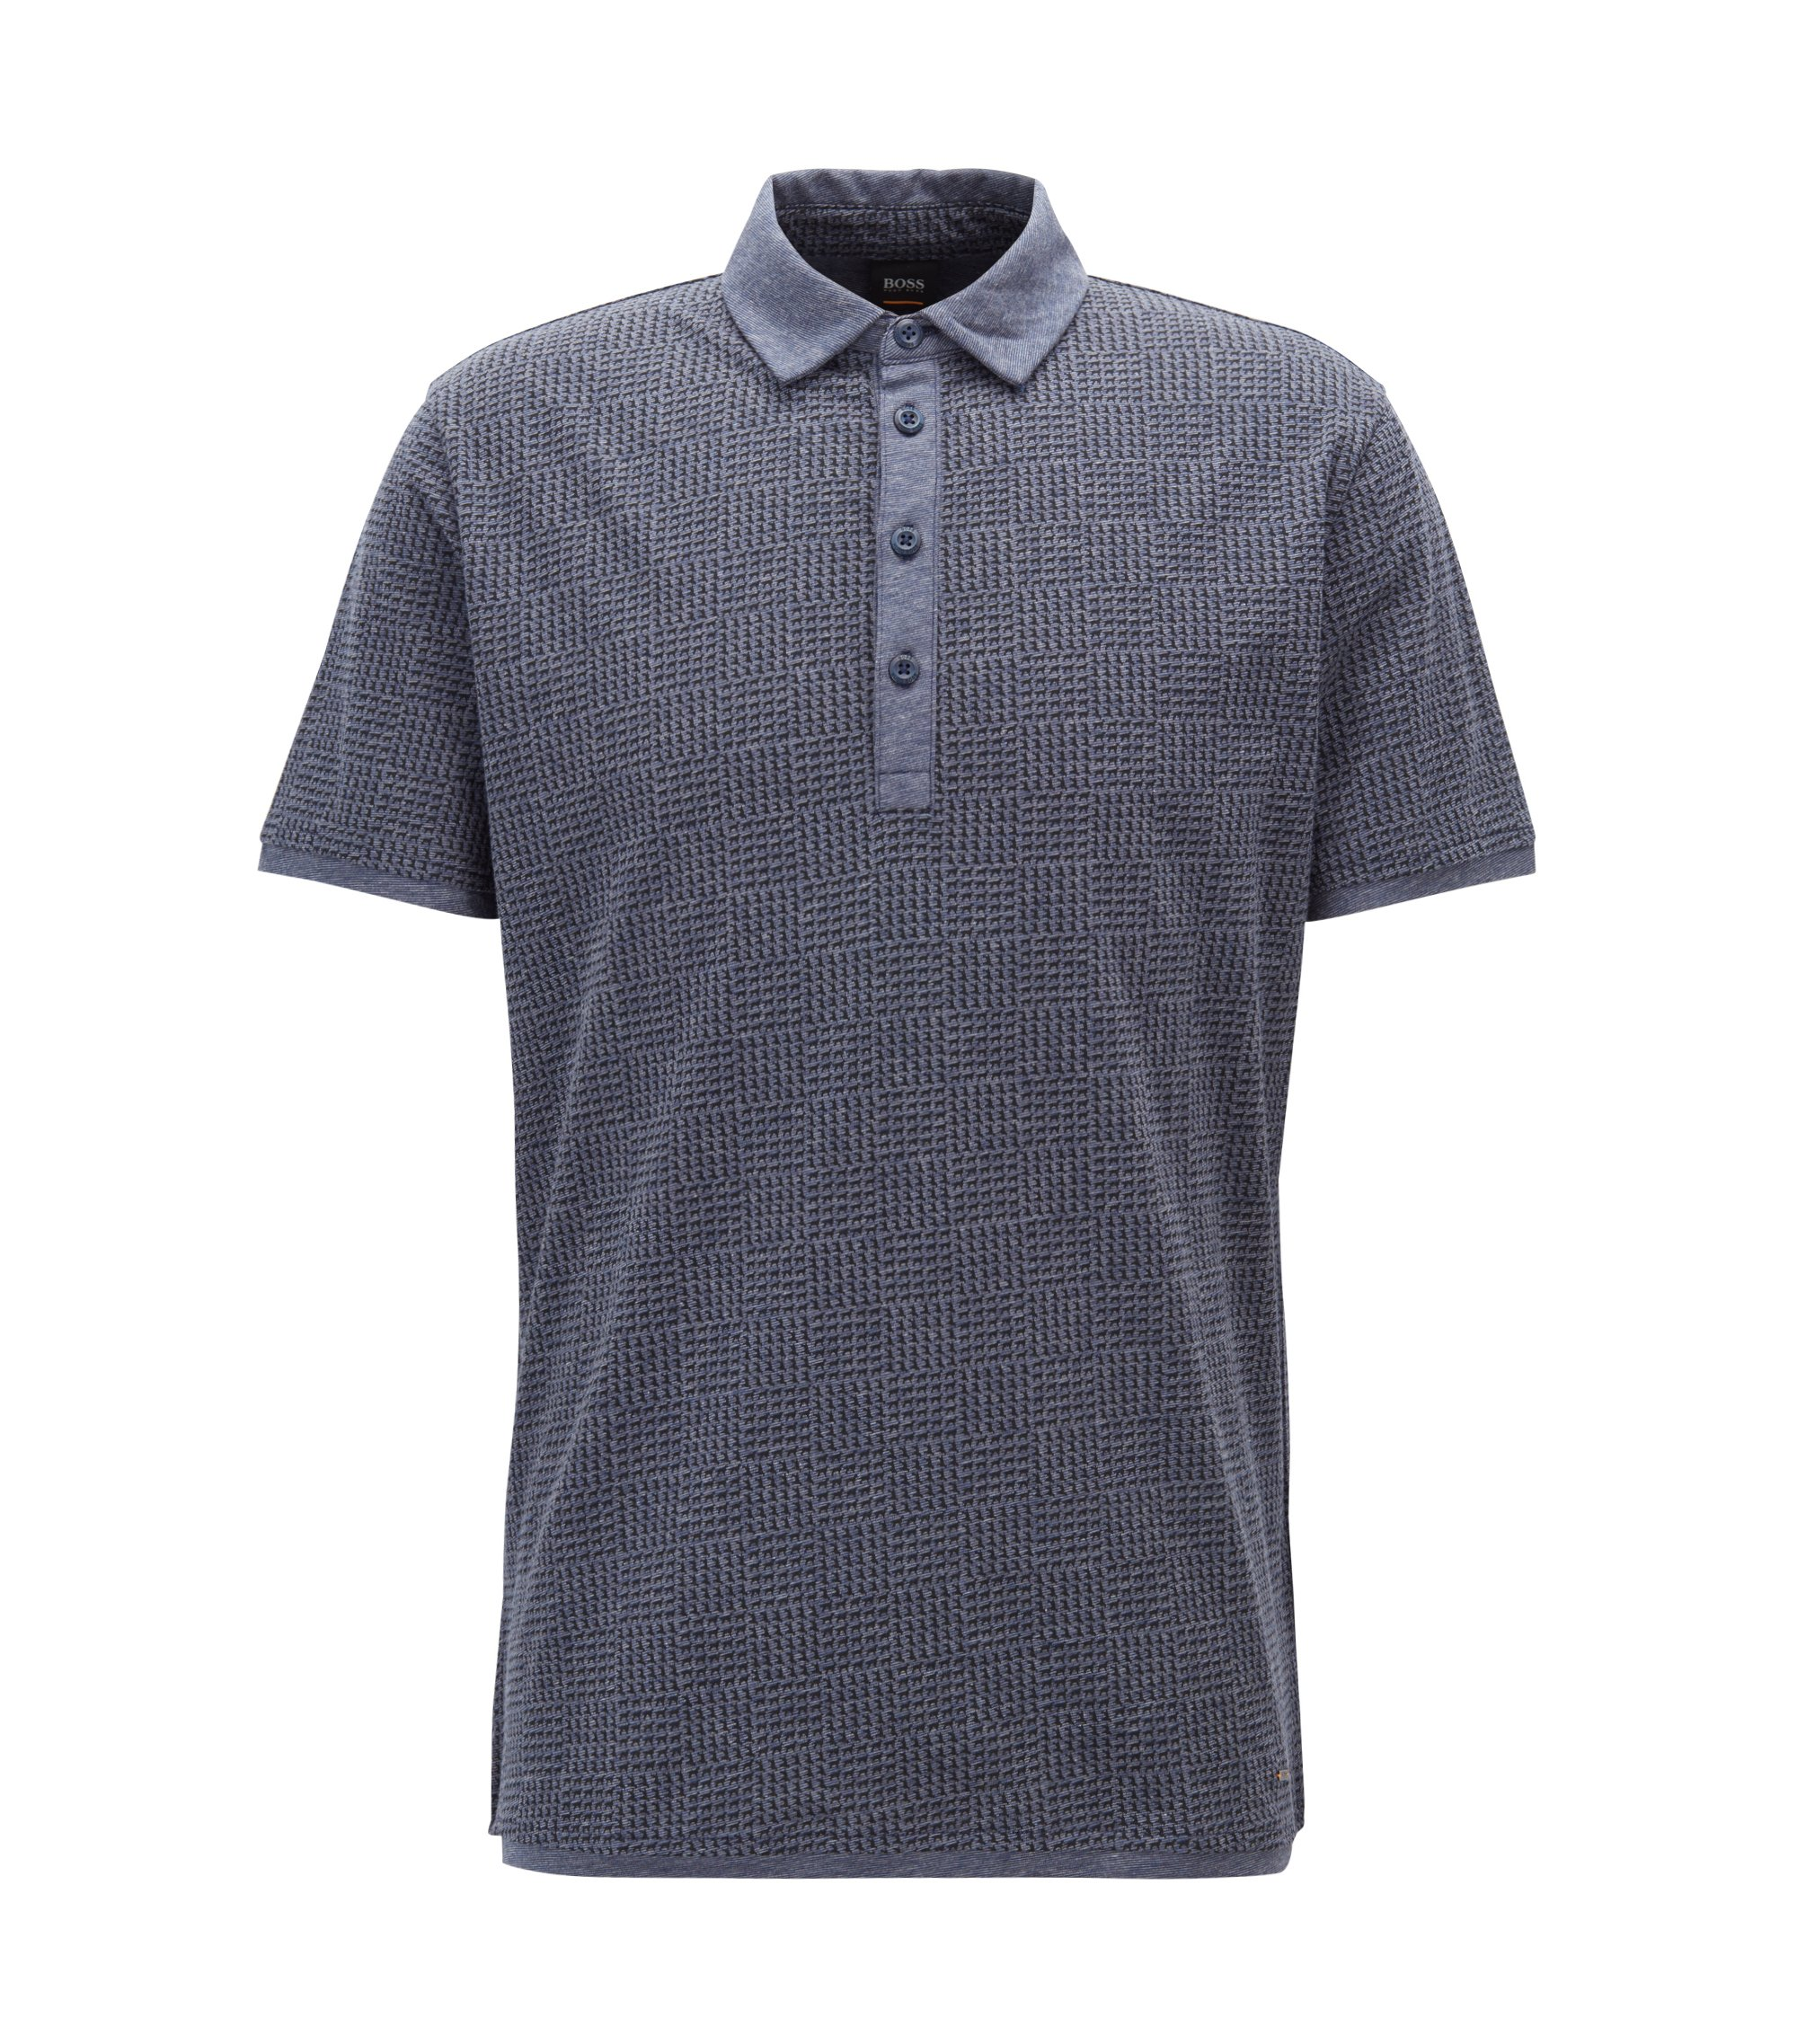 Polo shirt in melange jersey cotton with collection print, Blue